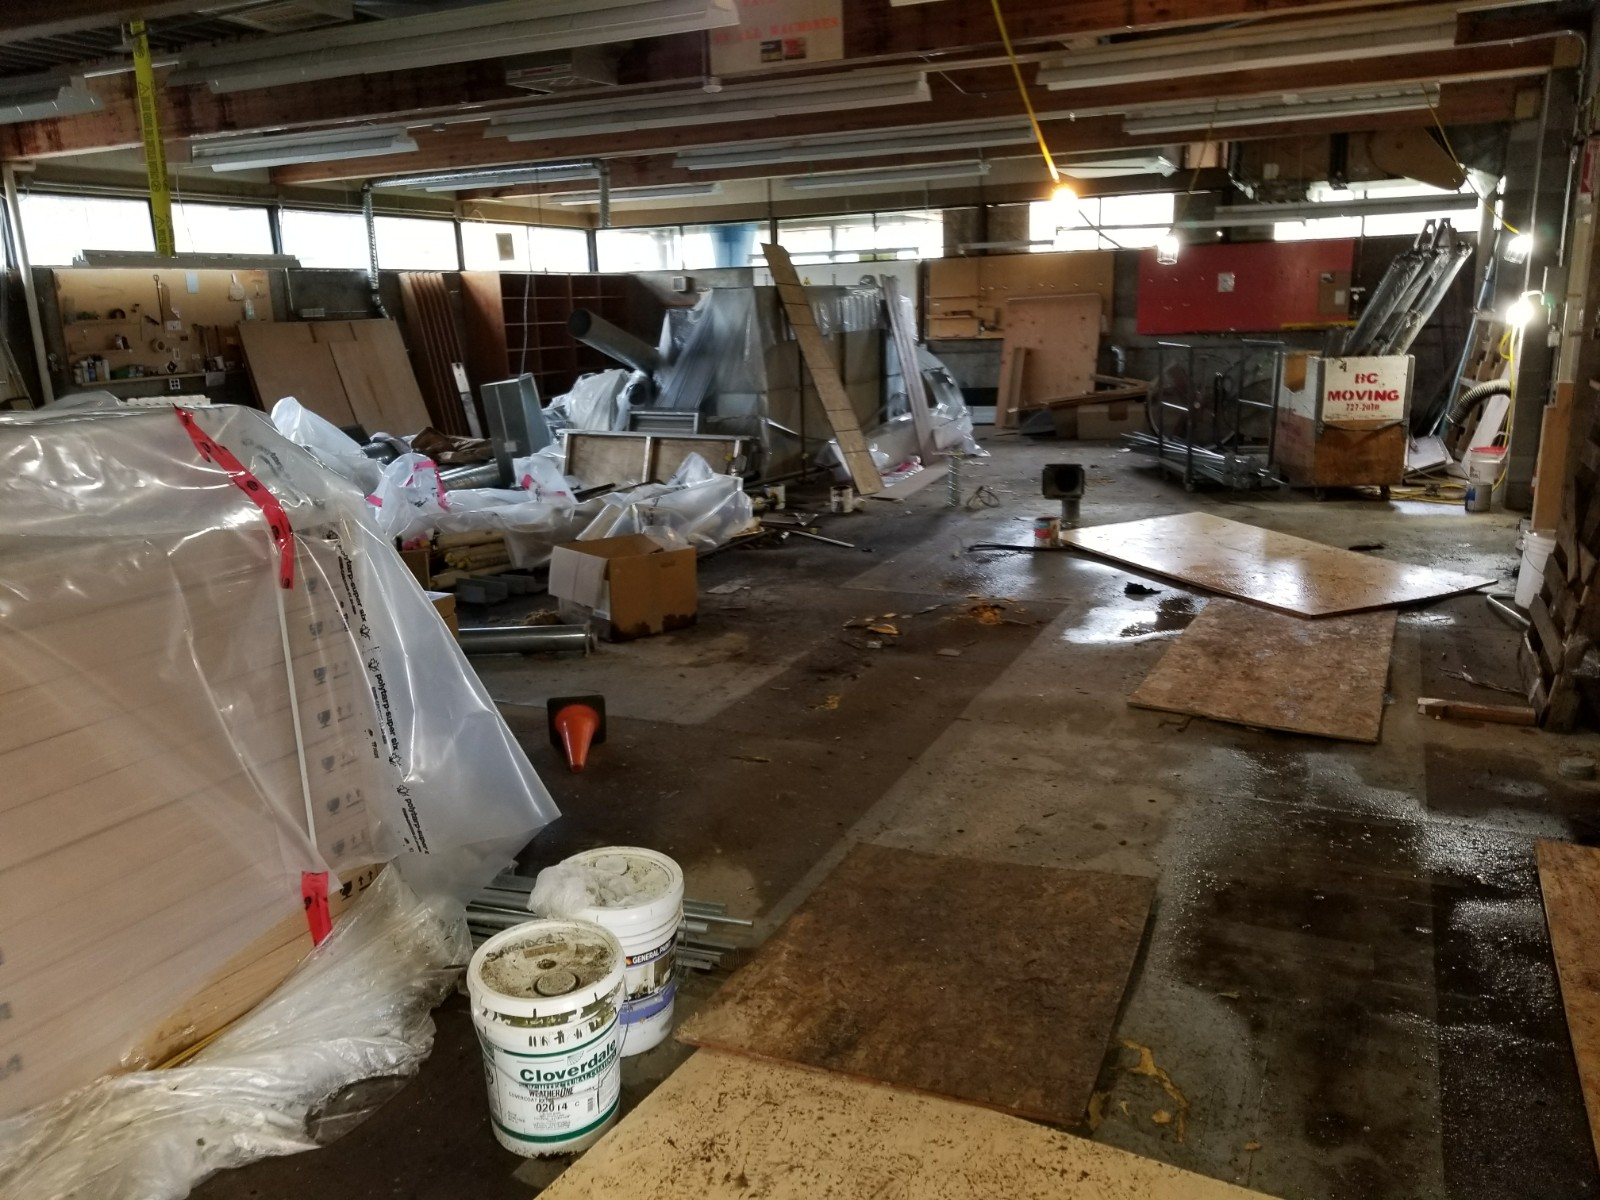 Commercial Asbestos Abatement - Canadian HAZ-MAT Environmental